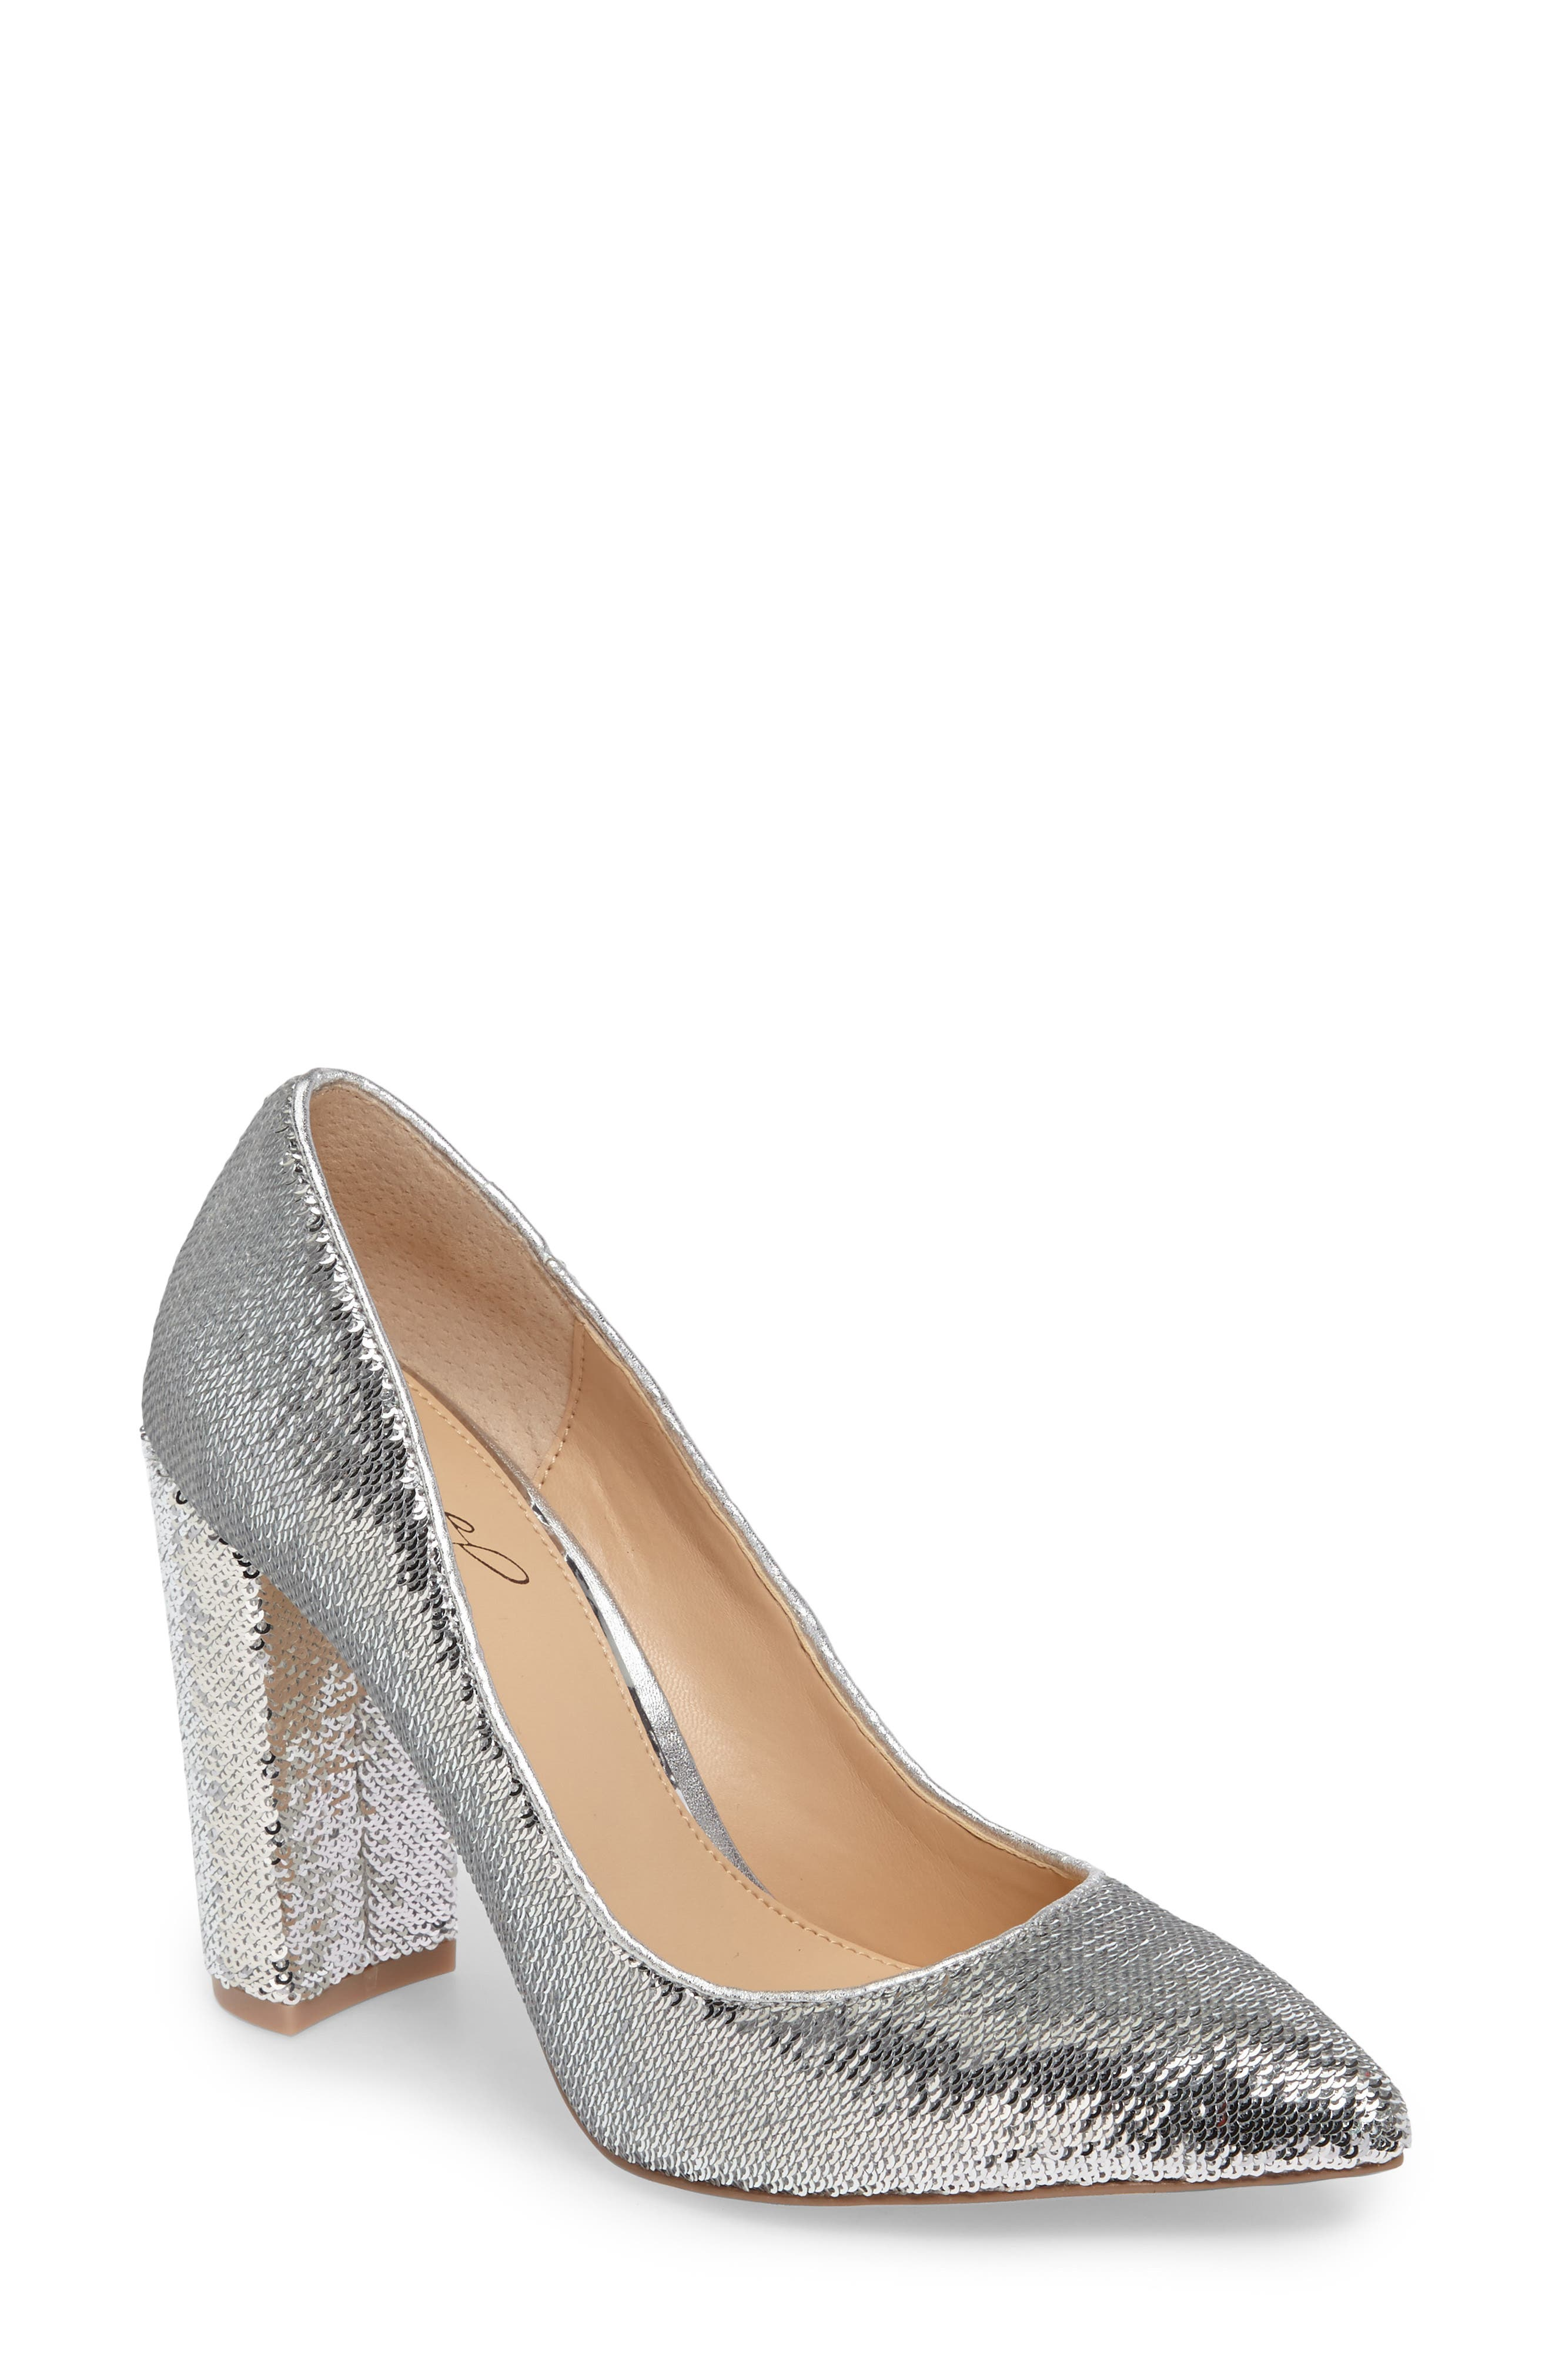 Luxury Pointy Toe Pump,                             Main thumbnail 1, color,                             Silver Leather